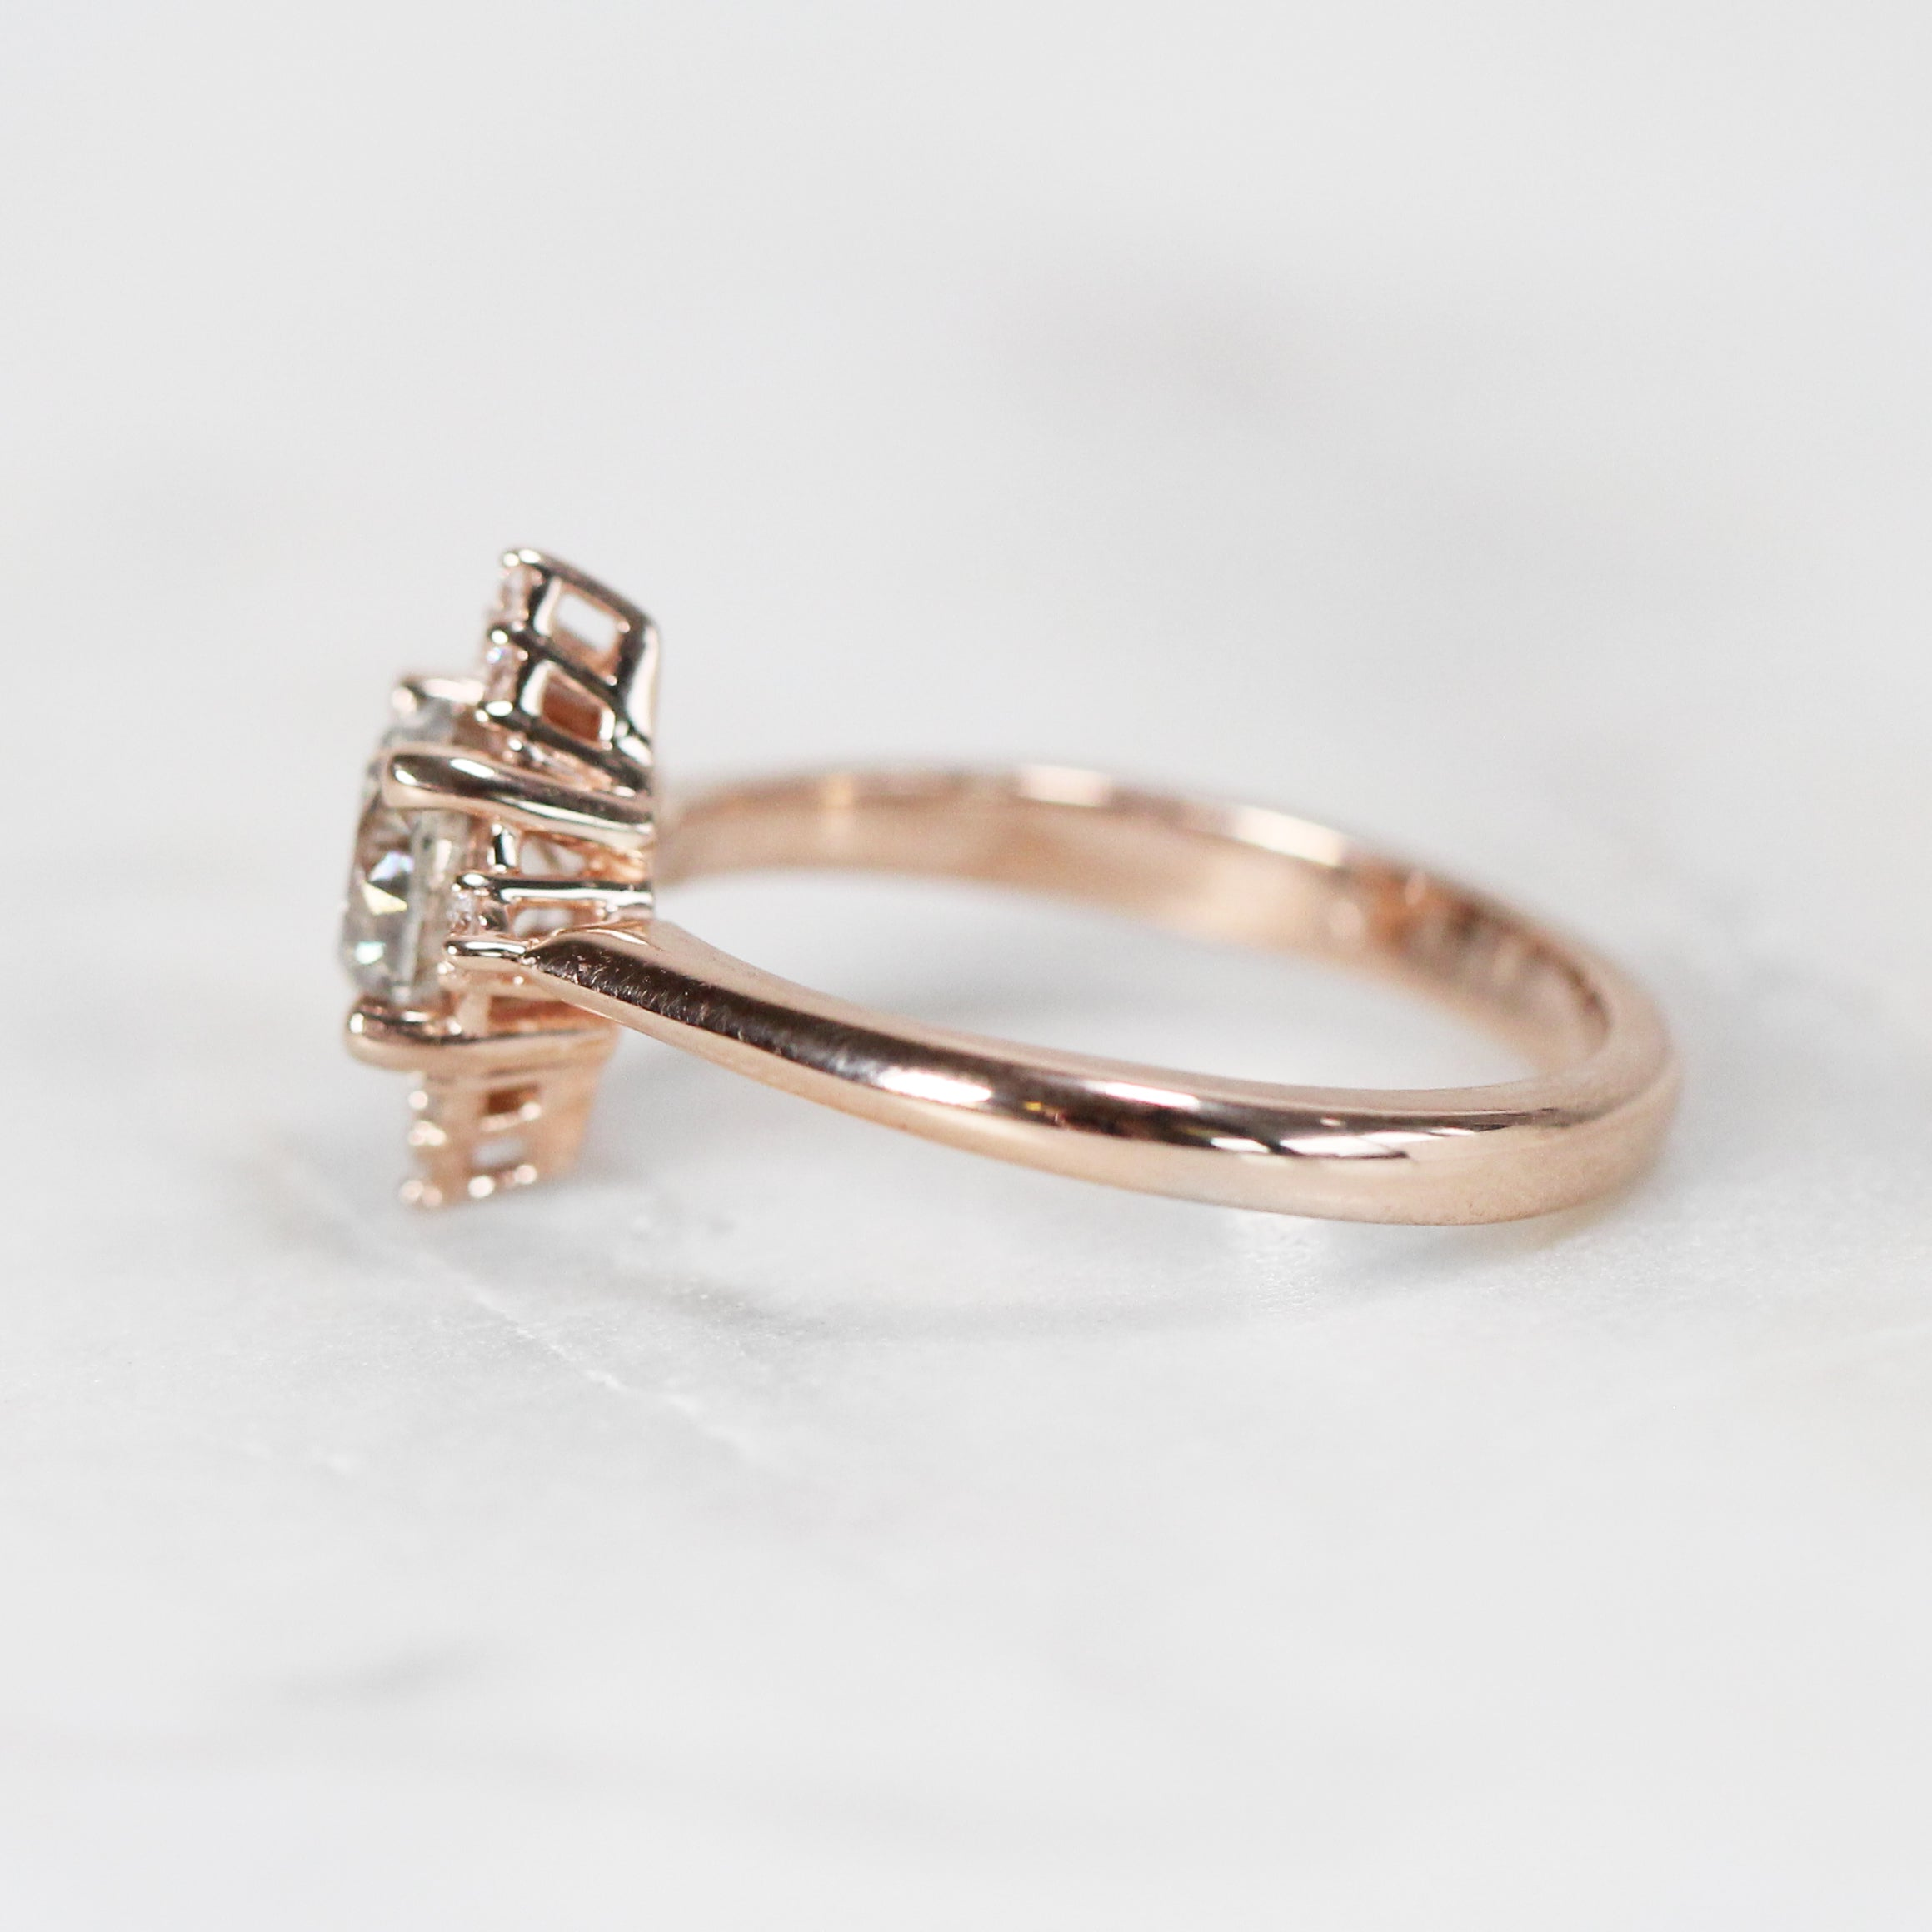 Emery Ring with 1.03 ct Brilliant Round Champagne Celestial Diamond in 10k Rose Gold - Ready to Size and Ship - Celestial Diamonds ® by Midwinter Co.